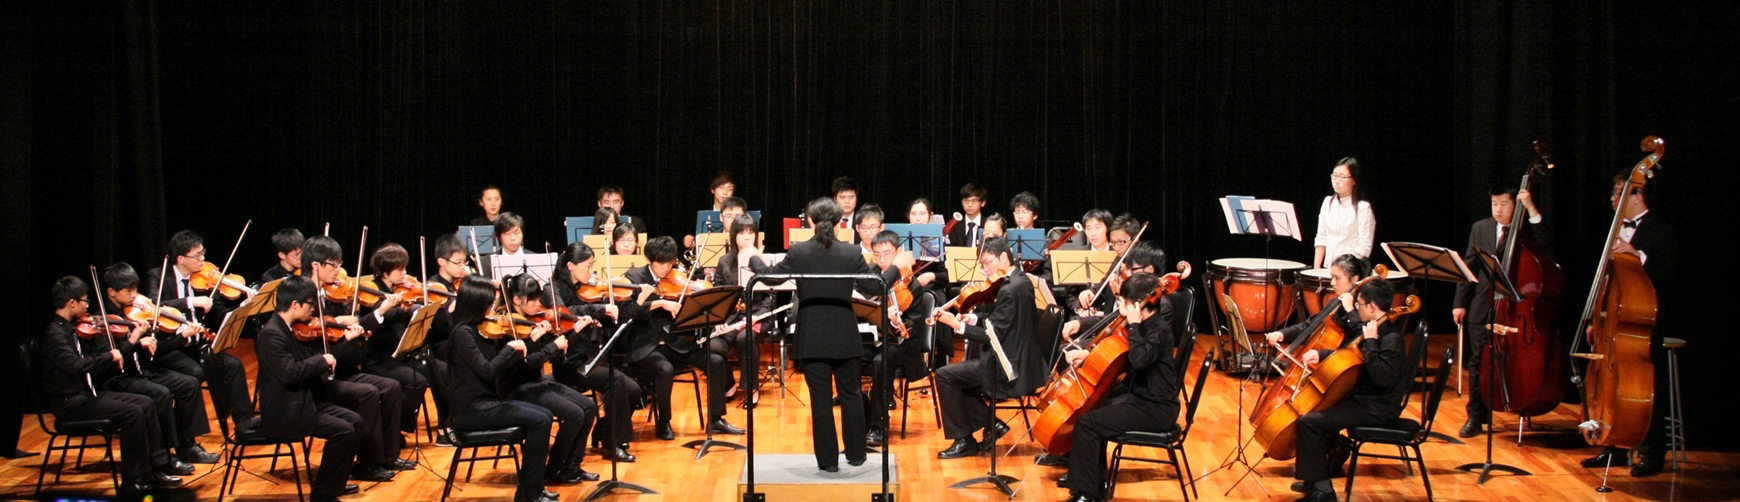 HKSS Youth Orchestra